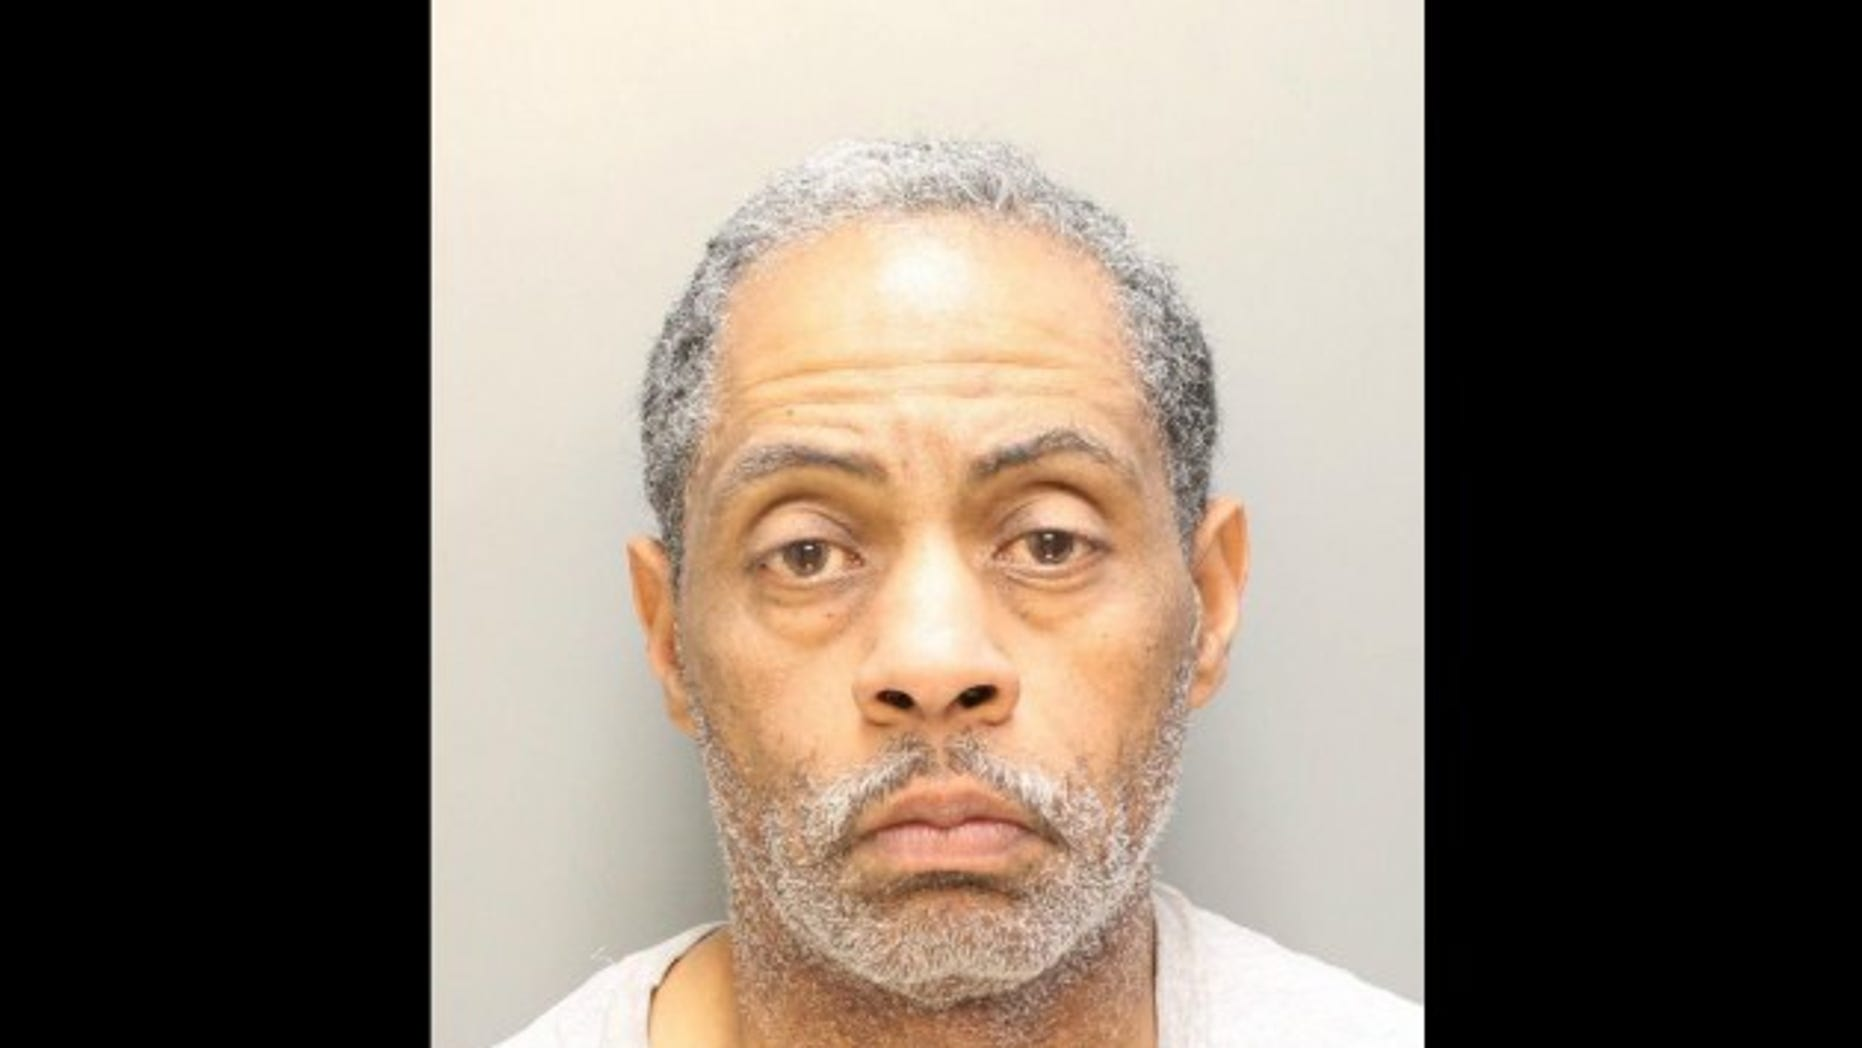 William Tucker is charged with four counts of criminal mischief.